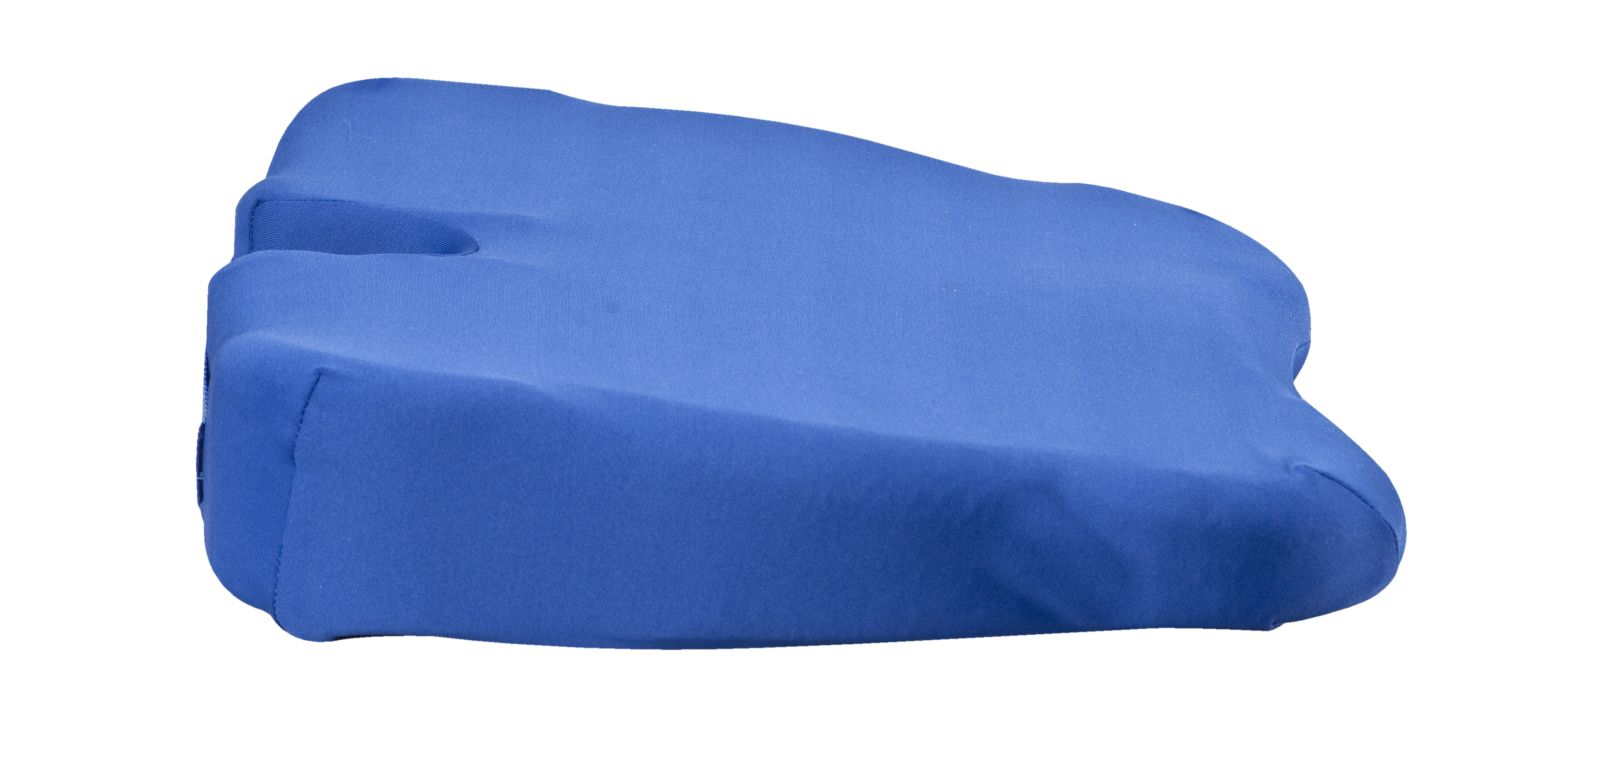 Kabooti Ring Positioning Pillow Positioning Pillows And